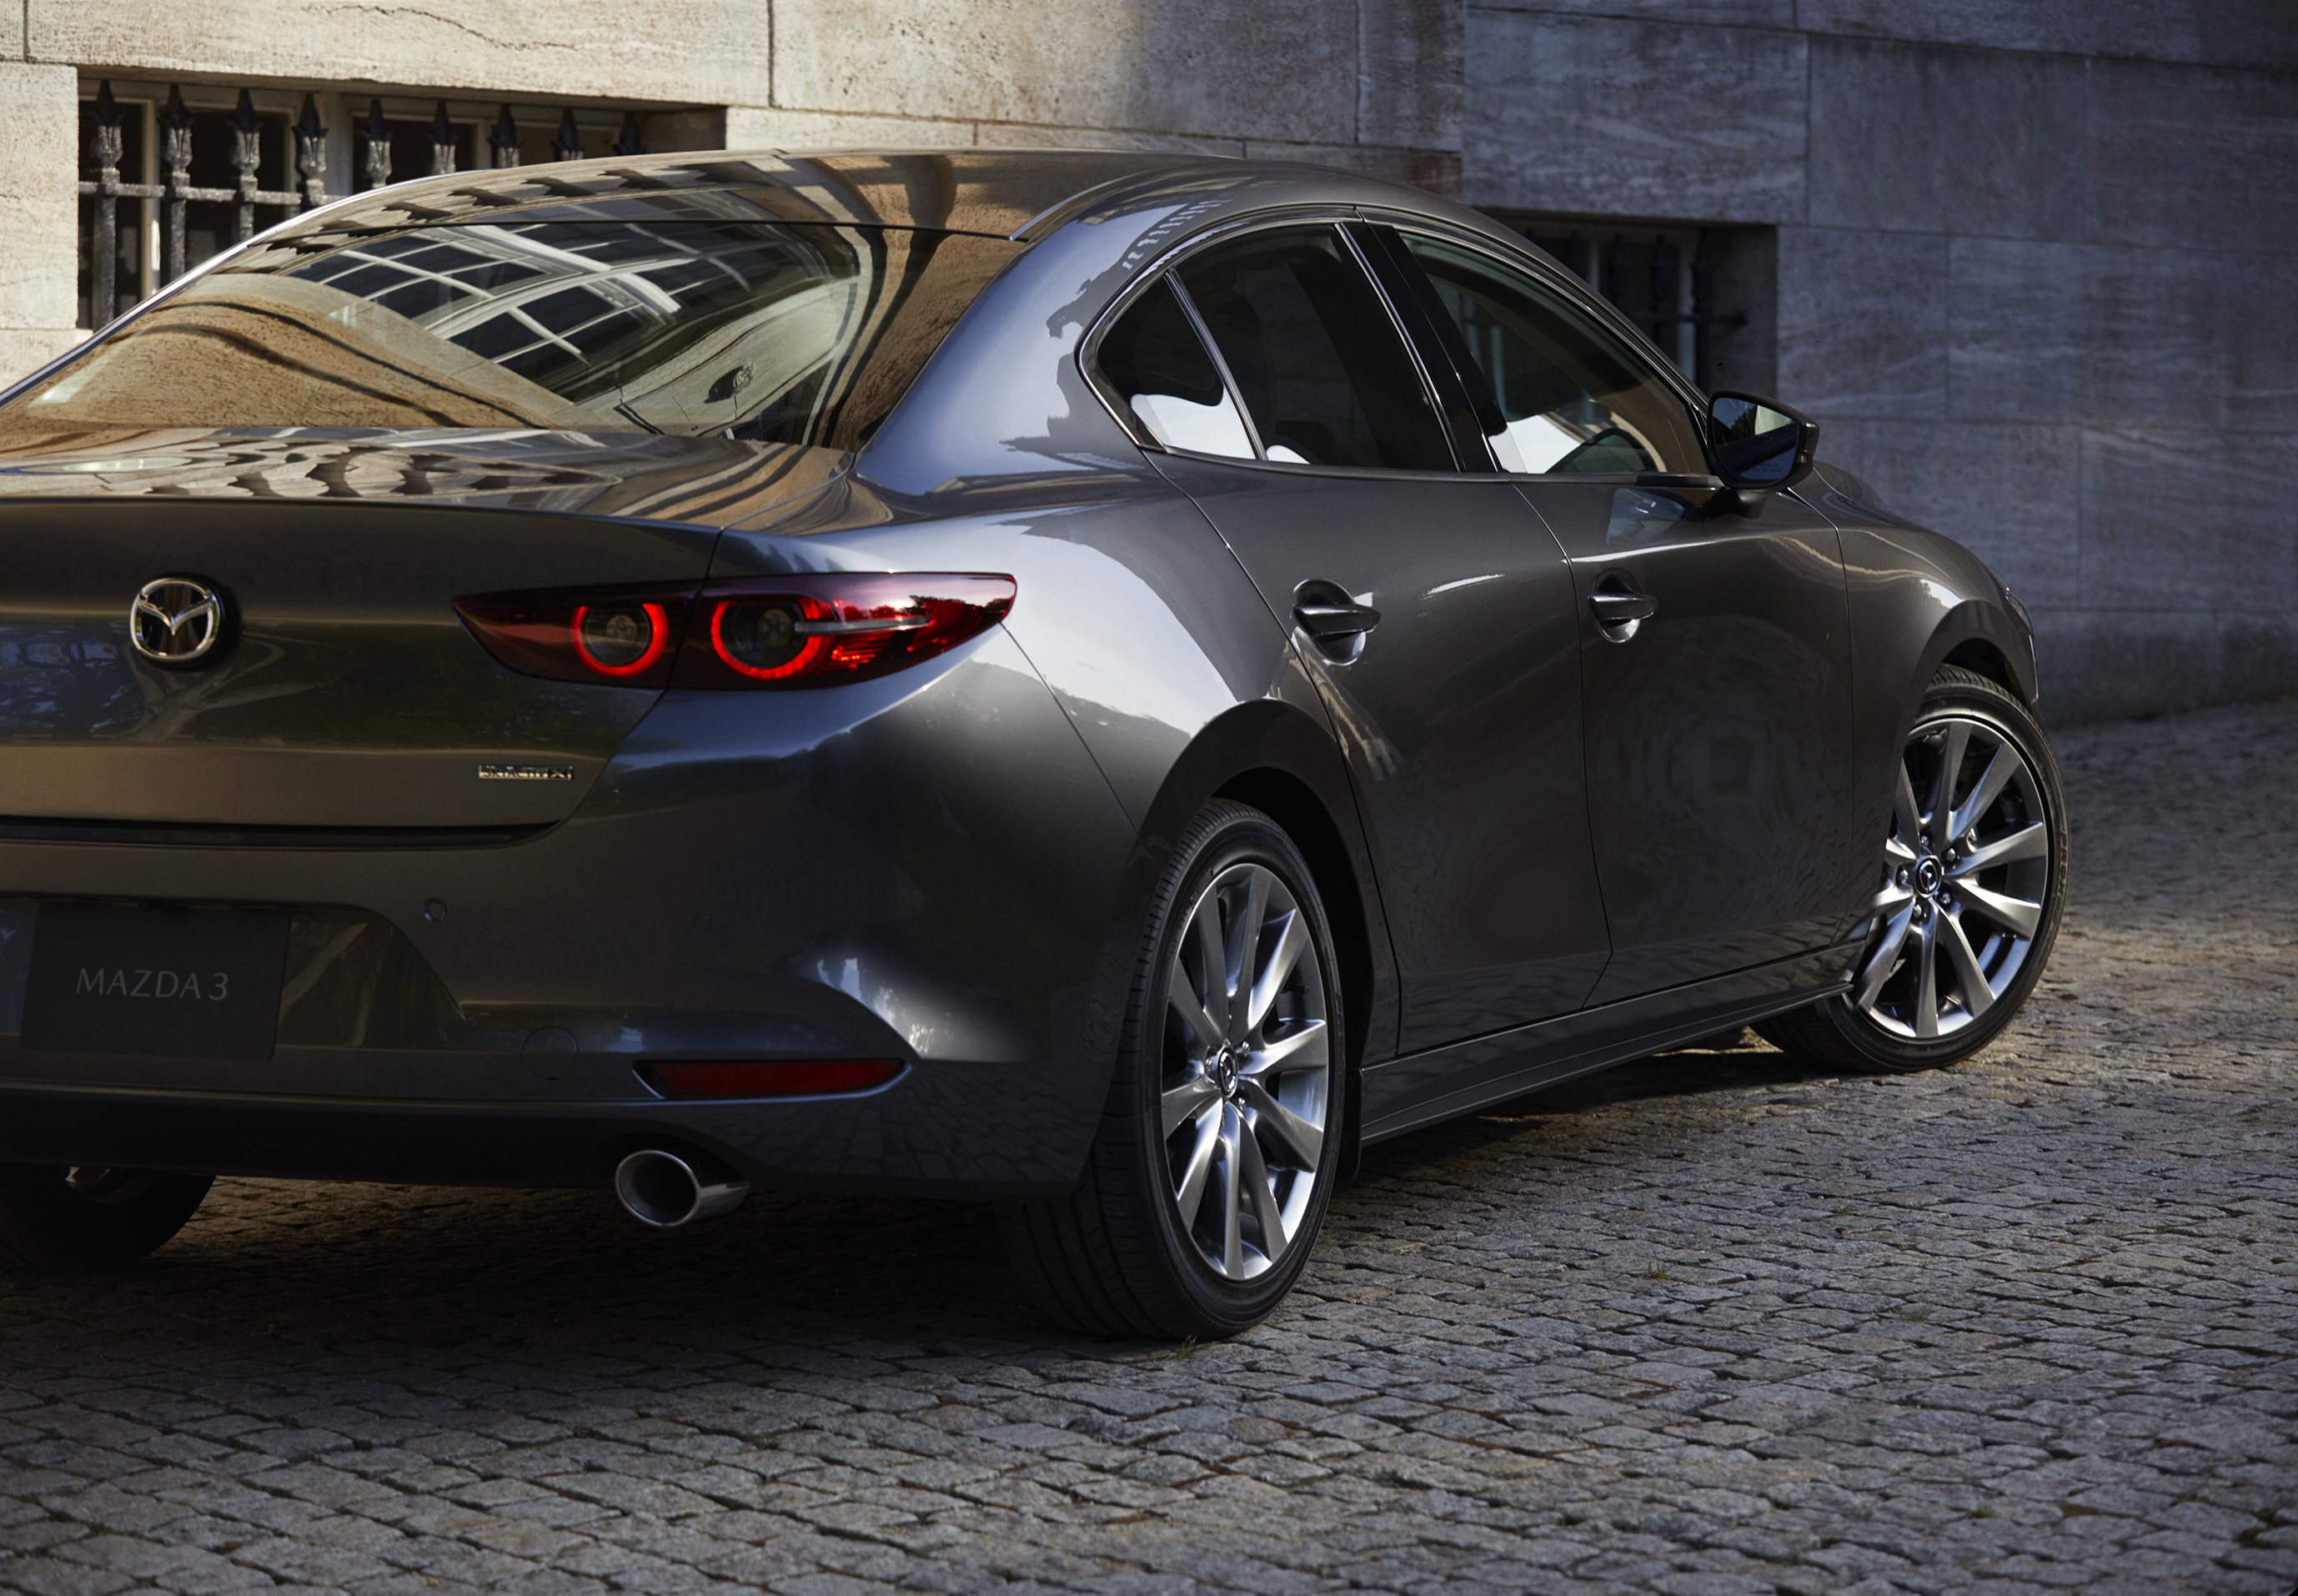 The Pros And Cons Of Buying A 2020 Mazda3 Sedan